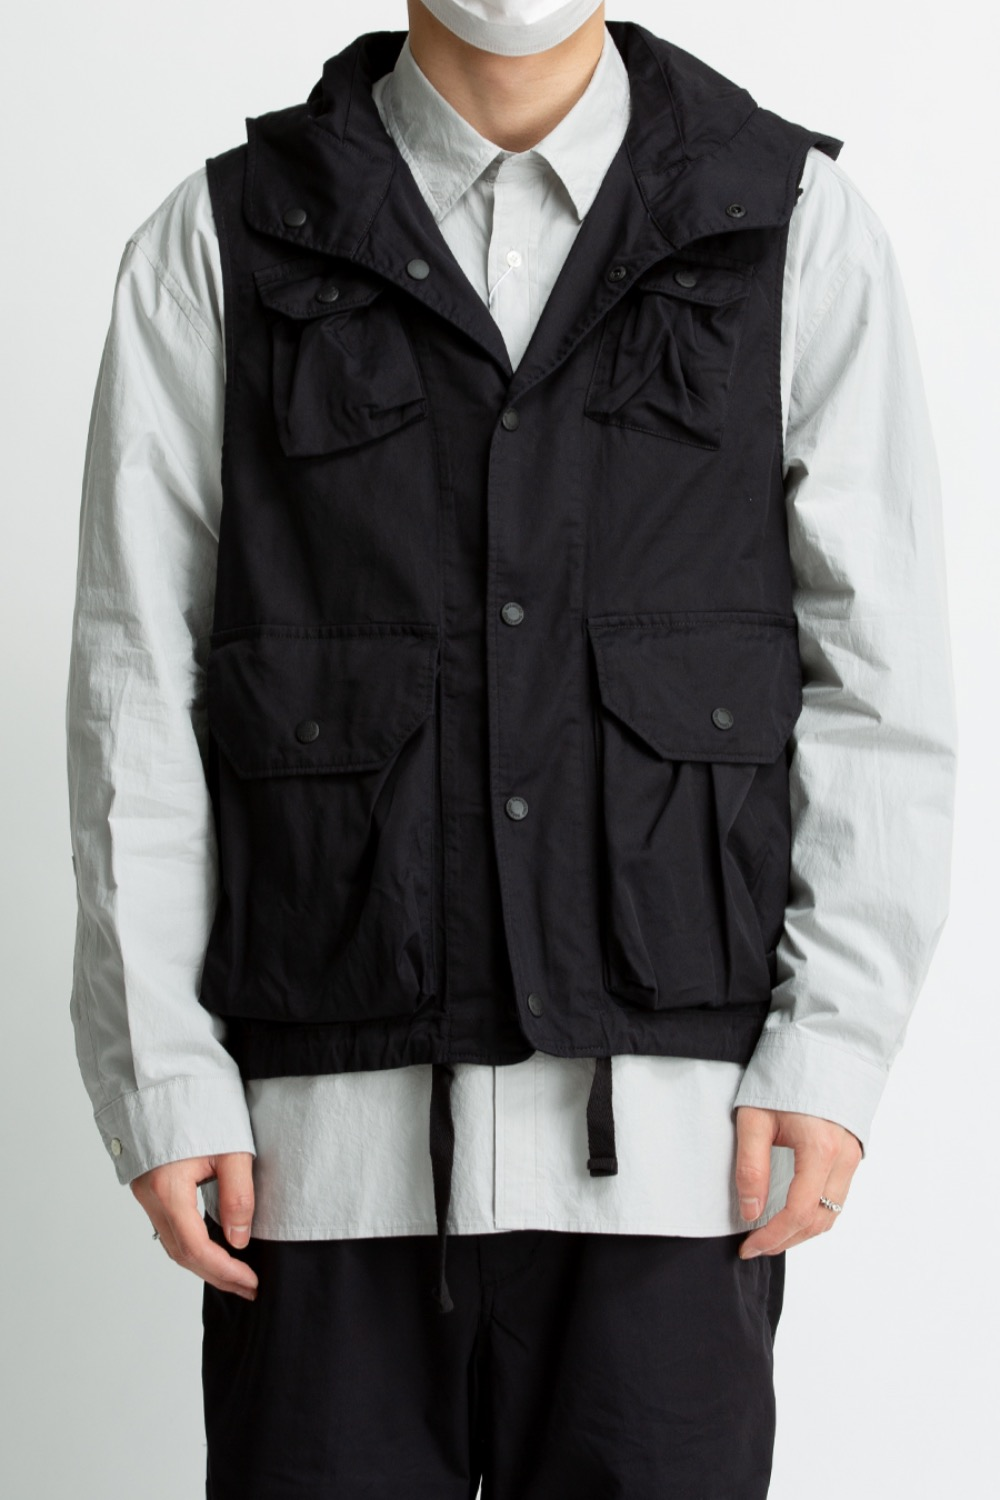 FIELD VEST BLACK HIGH COUNT TWILL